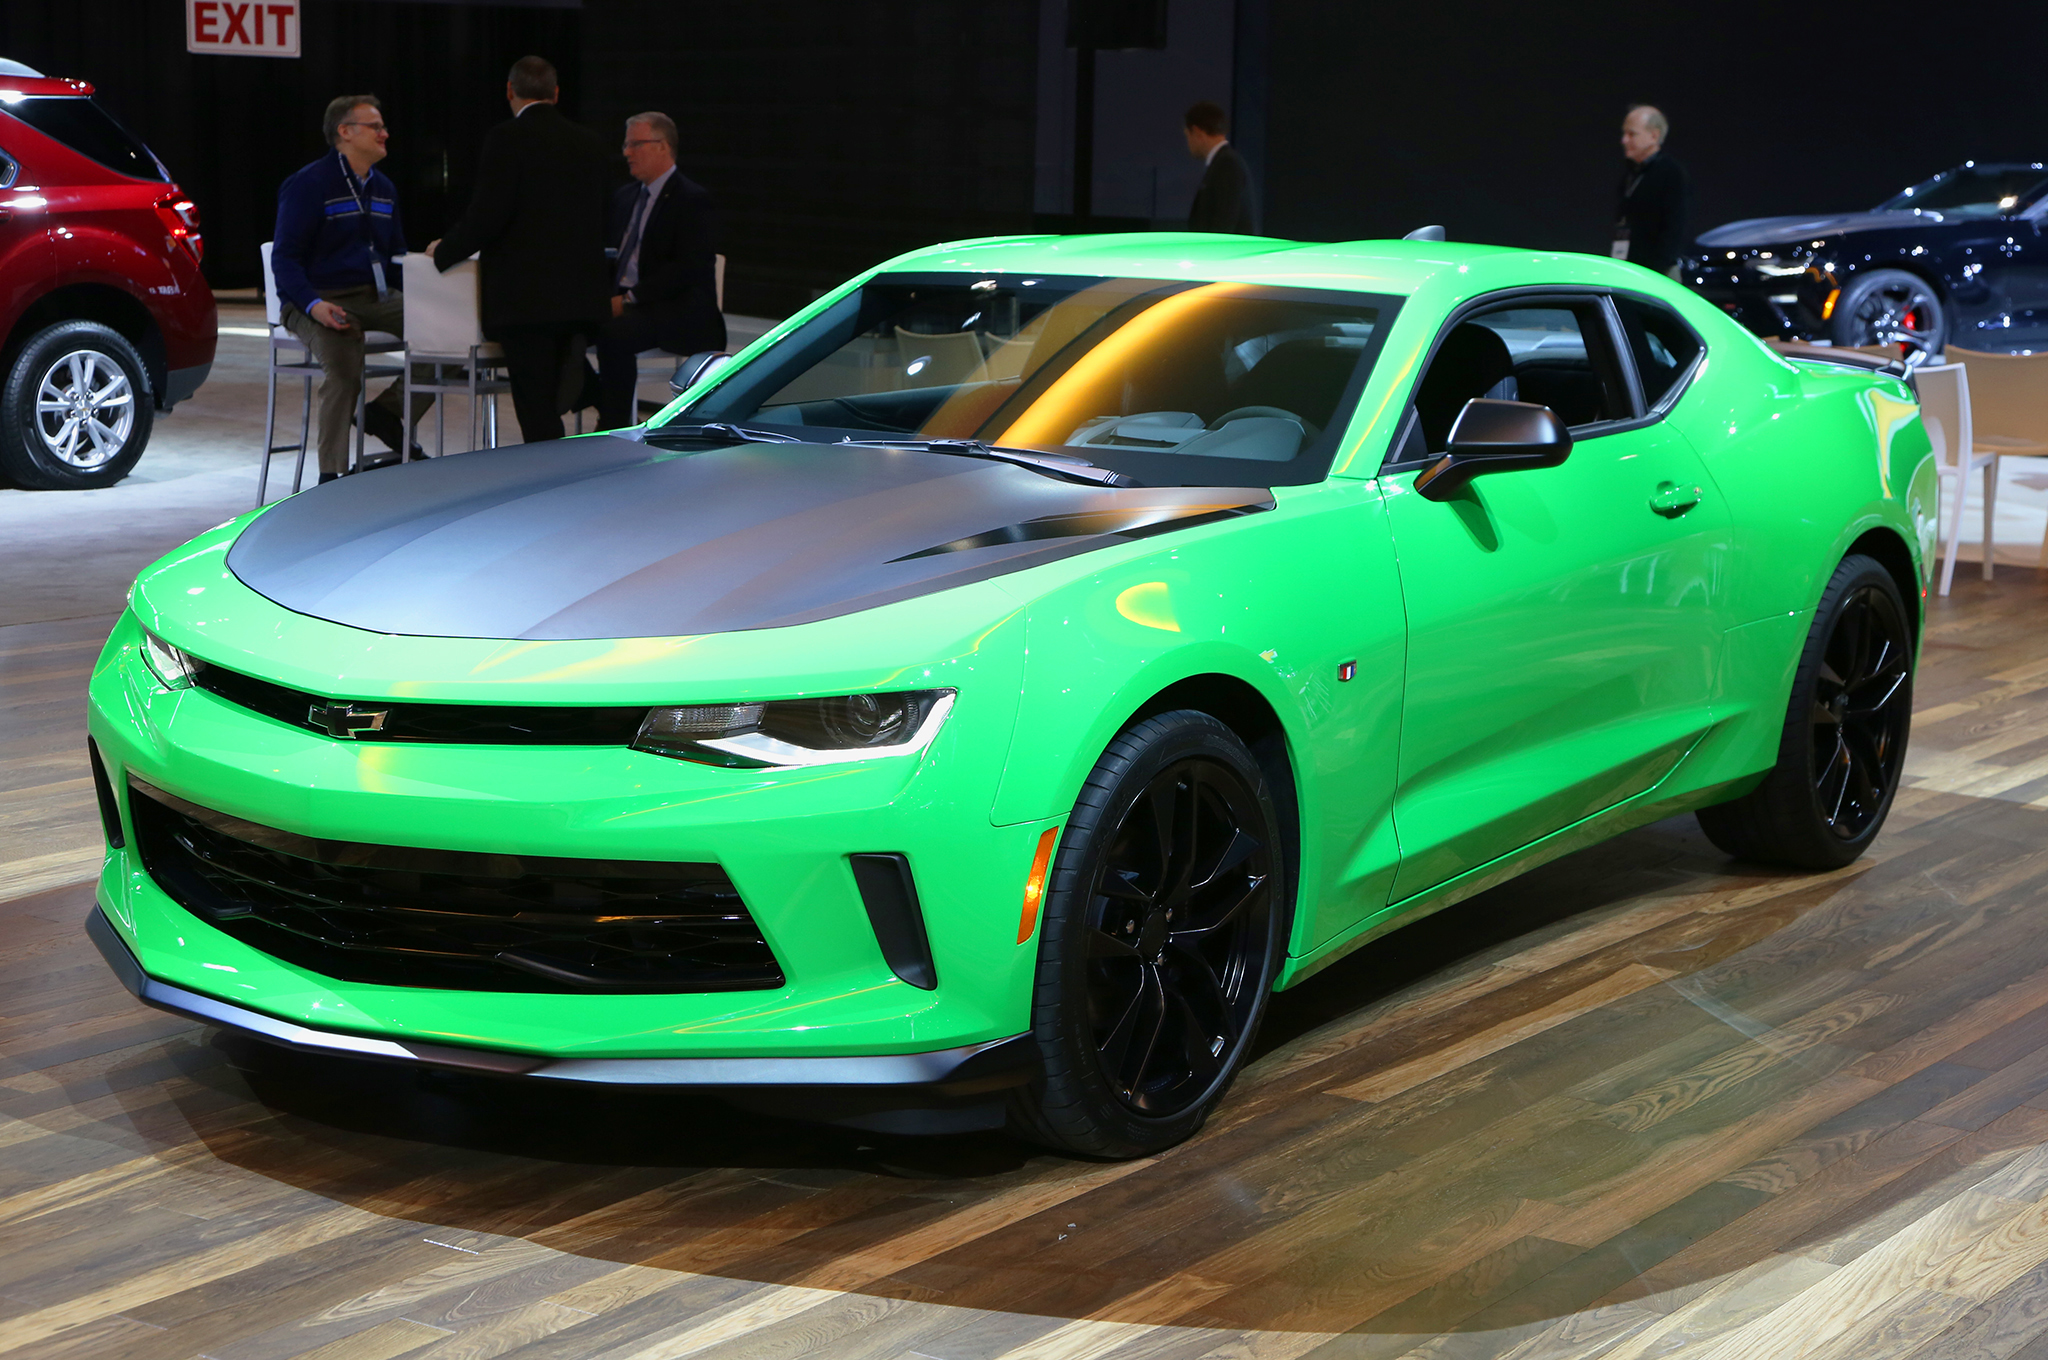 Chevy Camaro – new car under $25,000